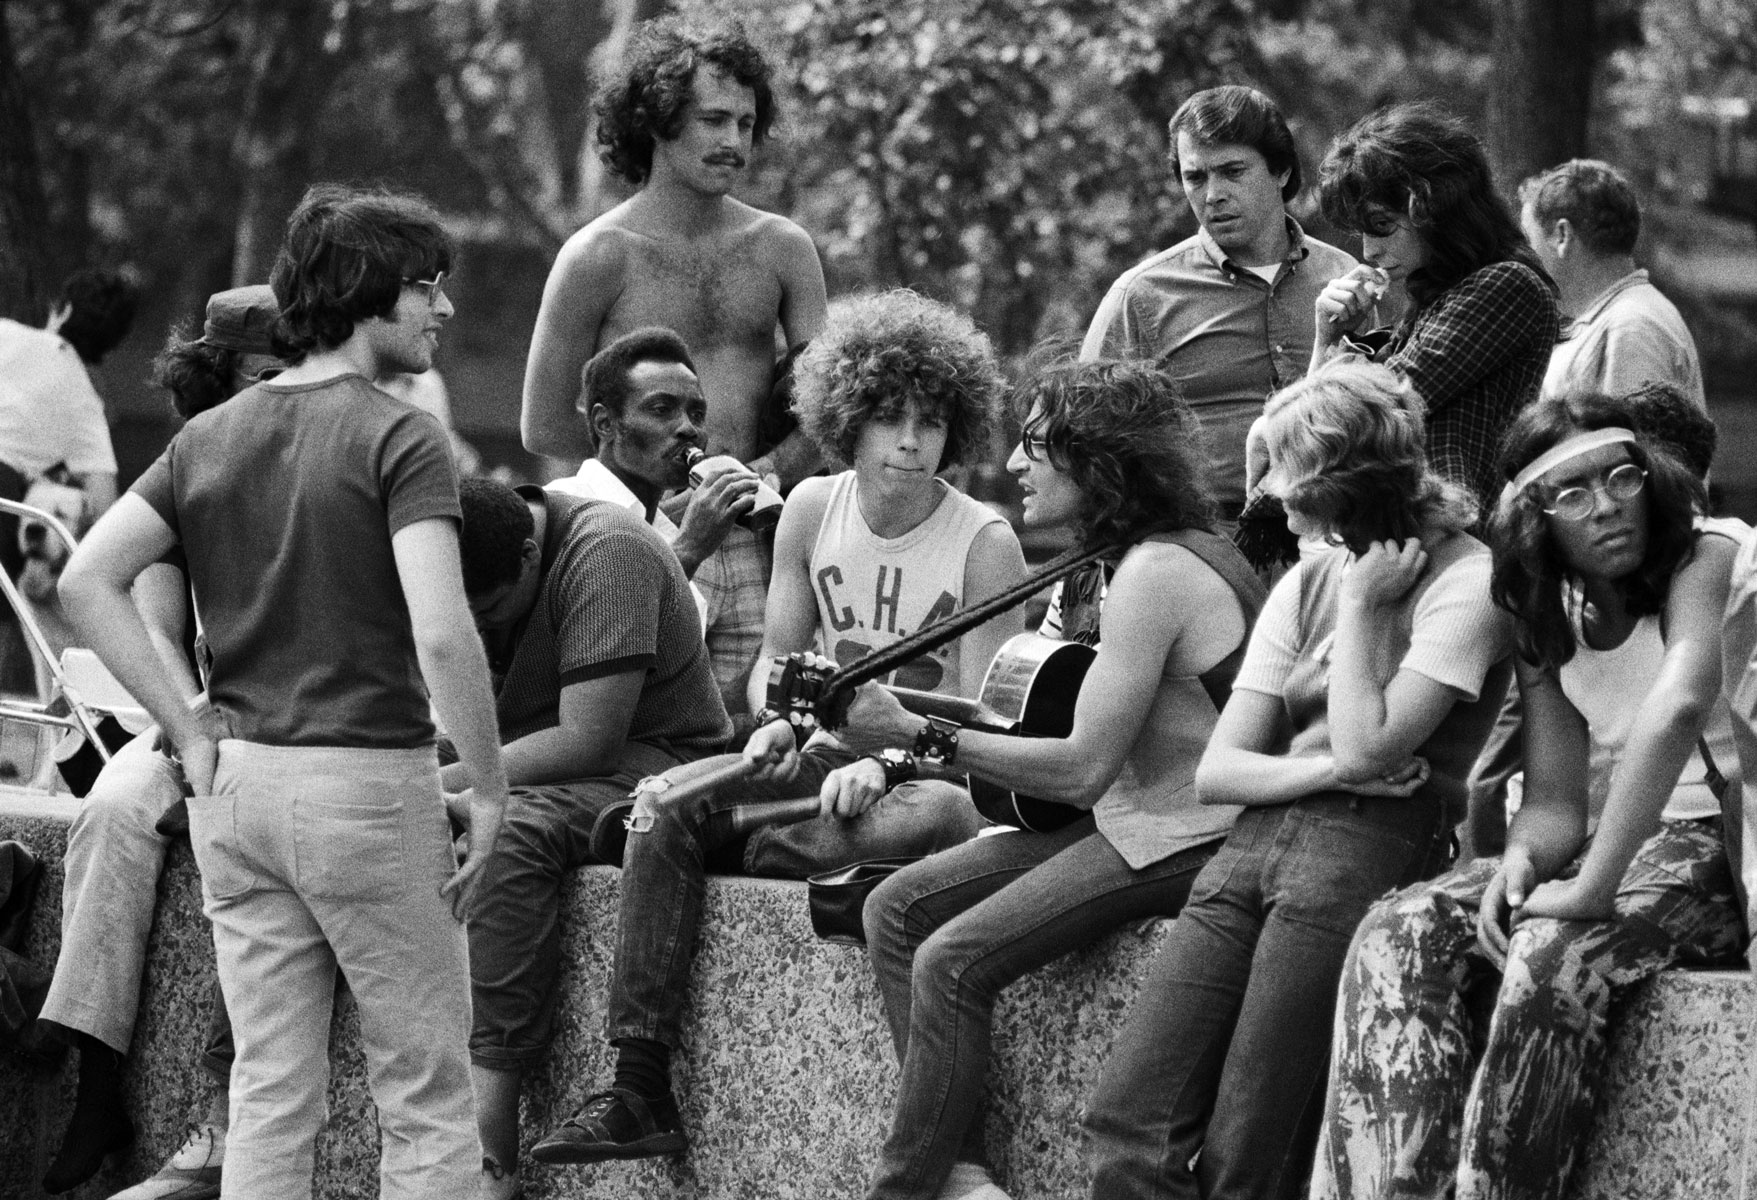 A group of hippies listen to a singer-guitarist in a New York City park Фото: Bettmann / Getty Images